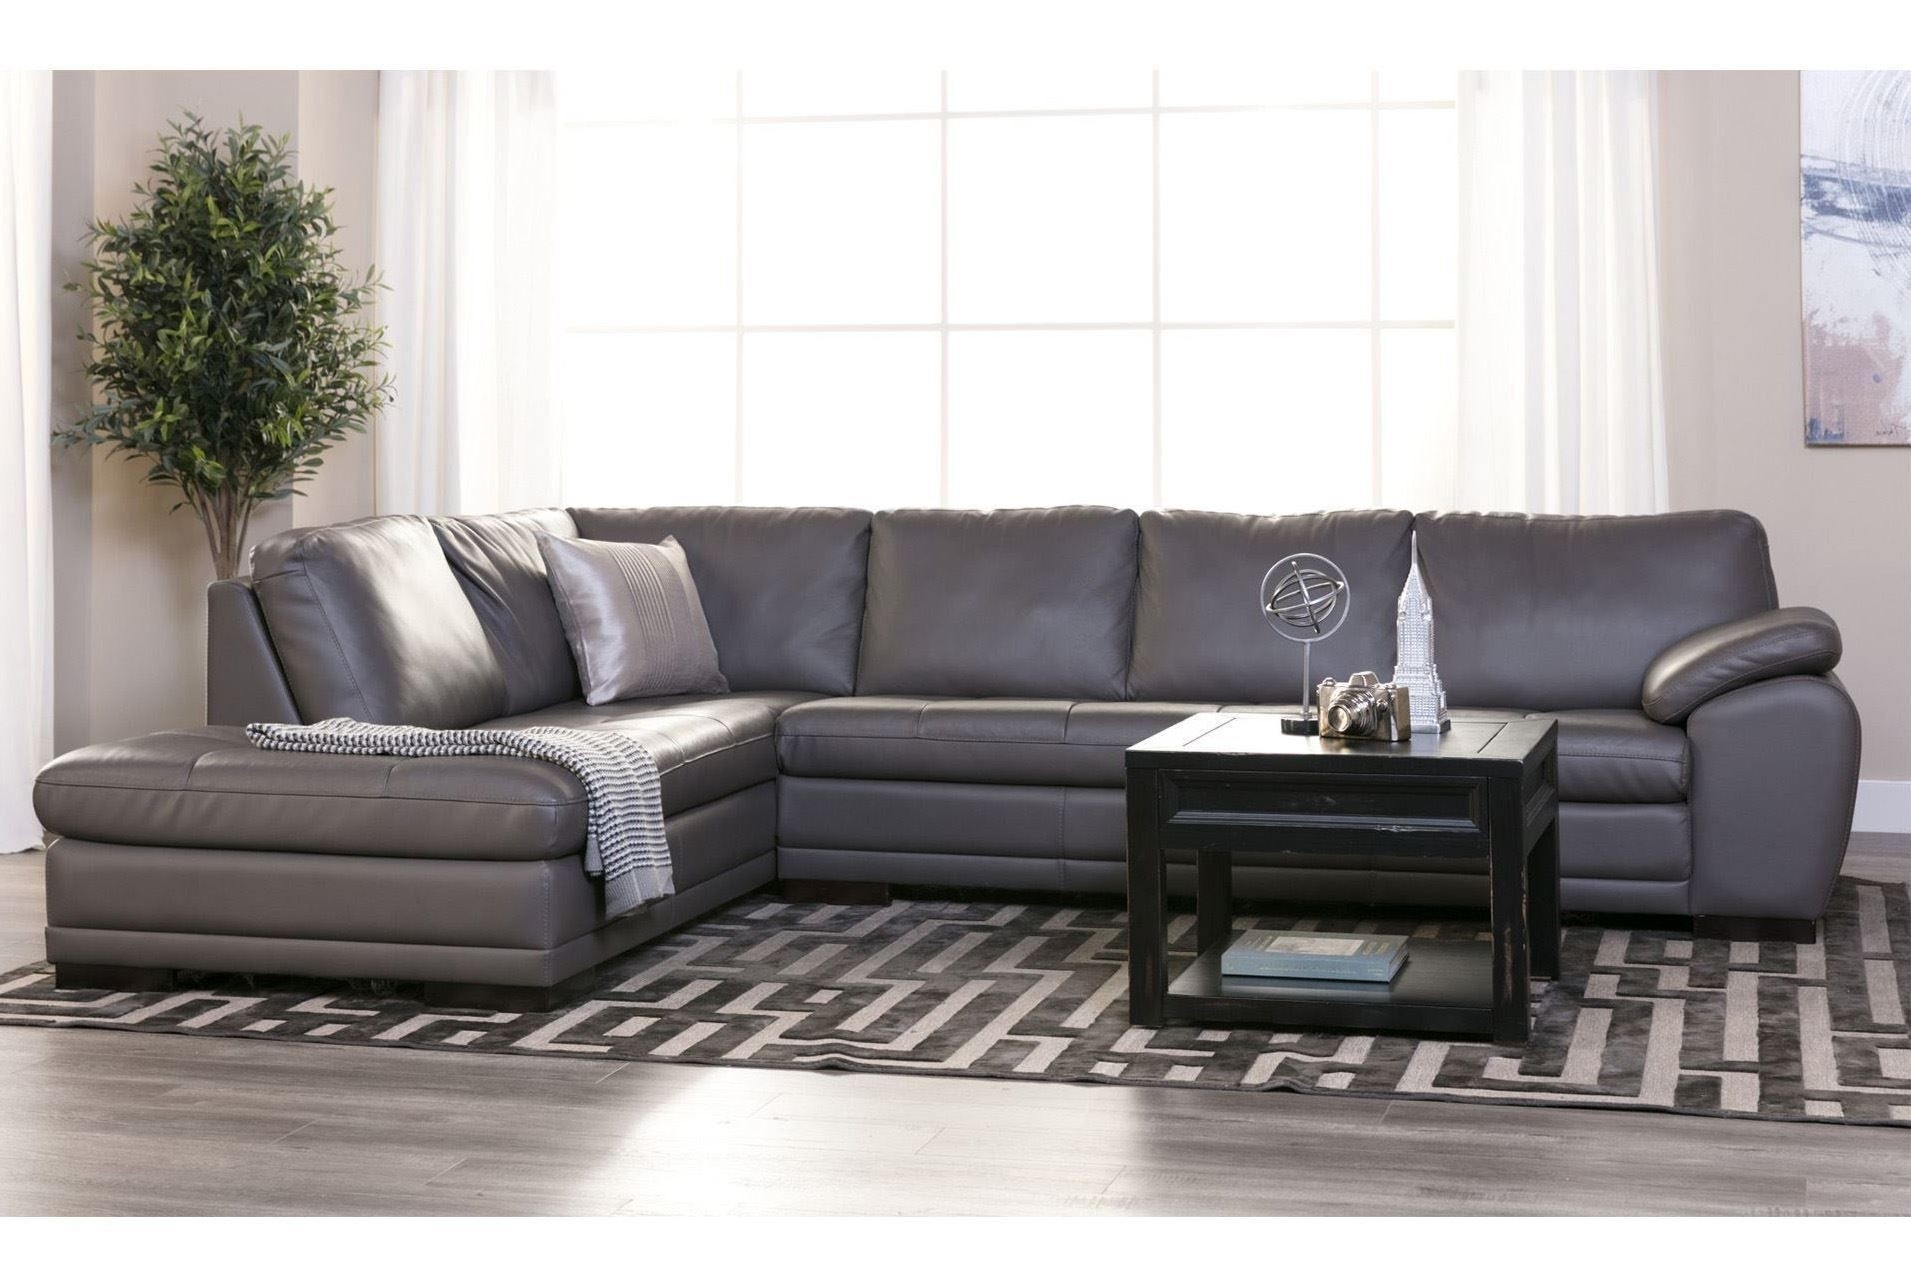 Living Spaces Leather Sectional Tatum Dark Grey 2 Piece W Raf Chaise Inside Tatum Dark Grey 2 Piece Sectionals With Raf Chaise (View 5 of 25)